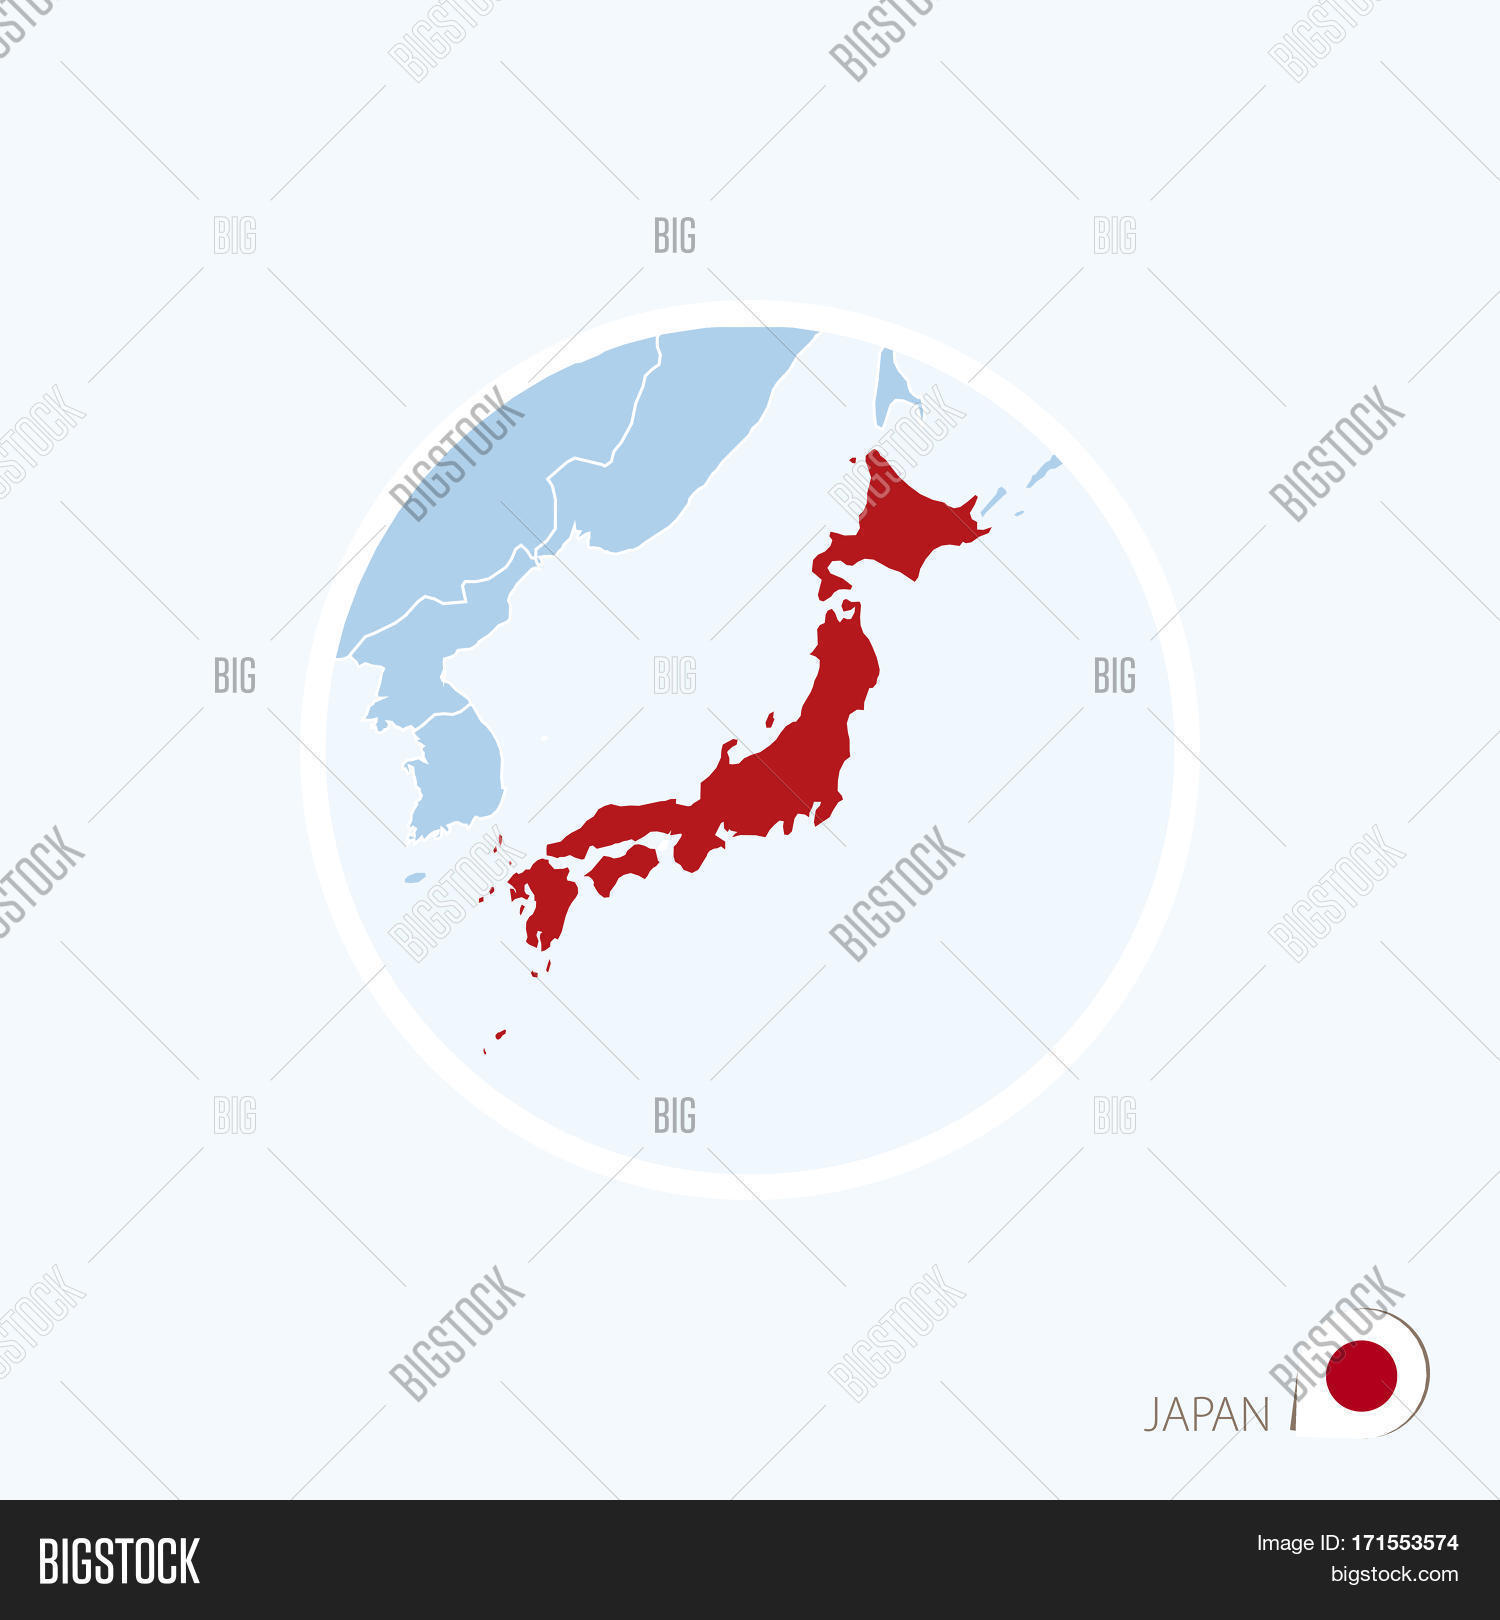 Map icon japan blue vector photo free trial bigstock map icon of japan blue map of east asia with highlighted japan in red color gumiabroncs Gallery